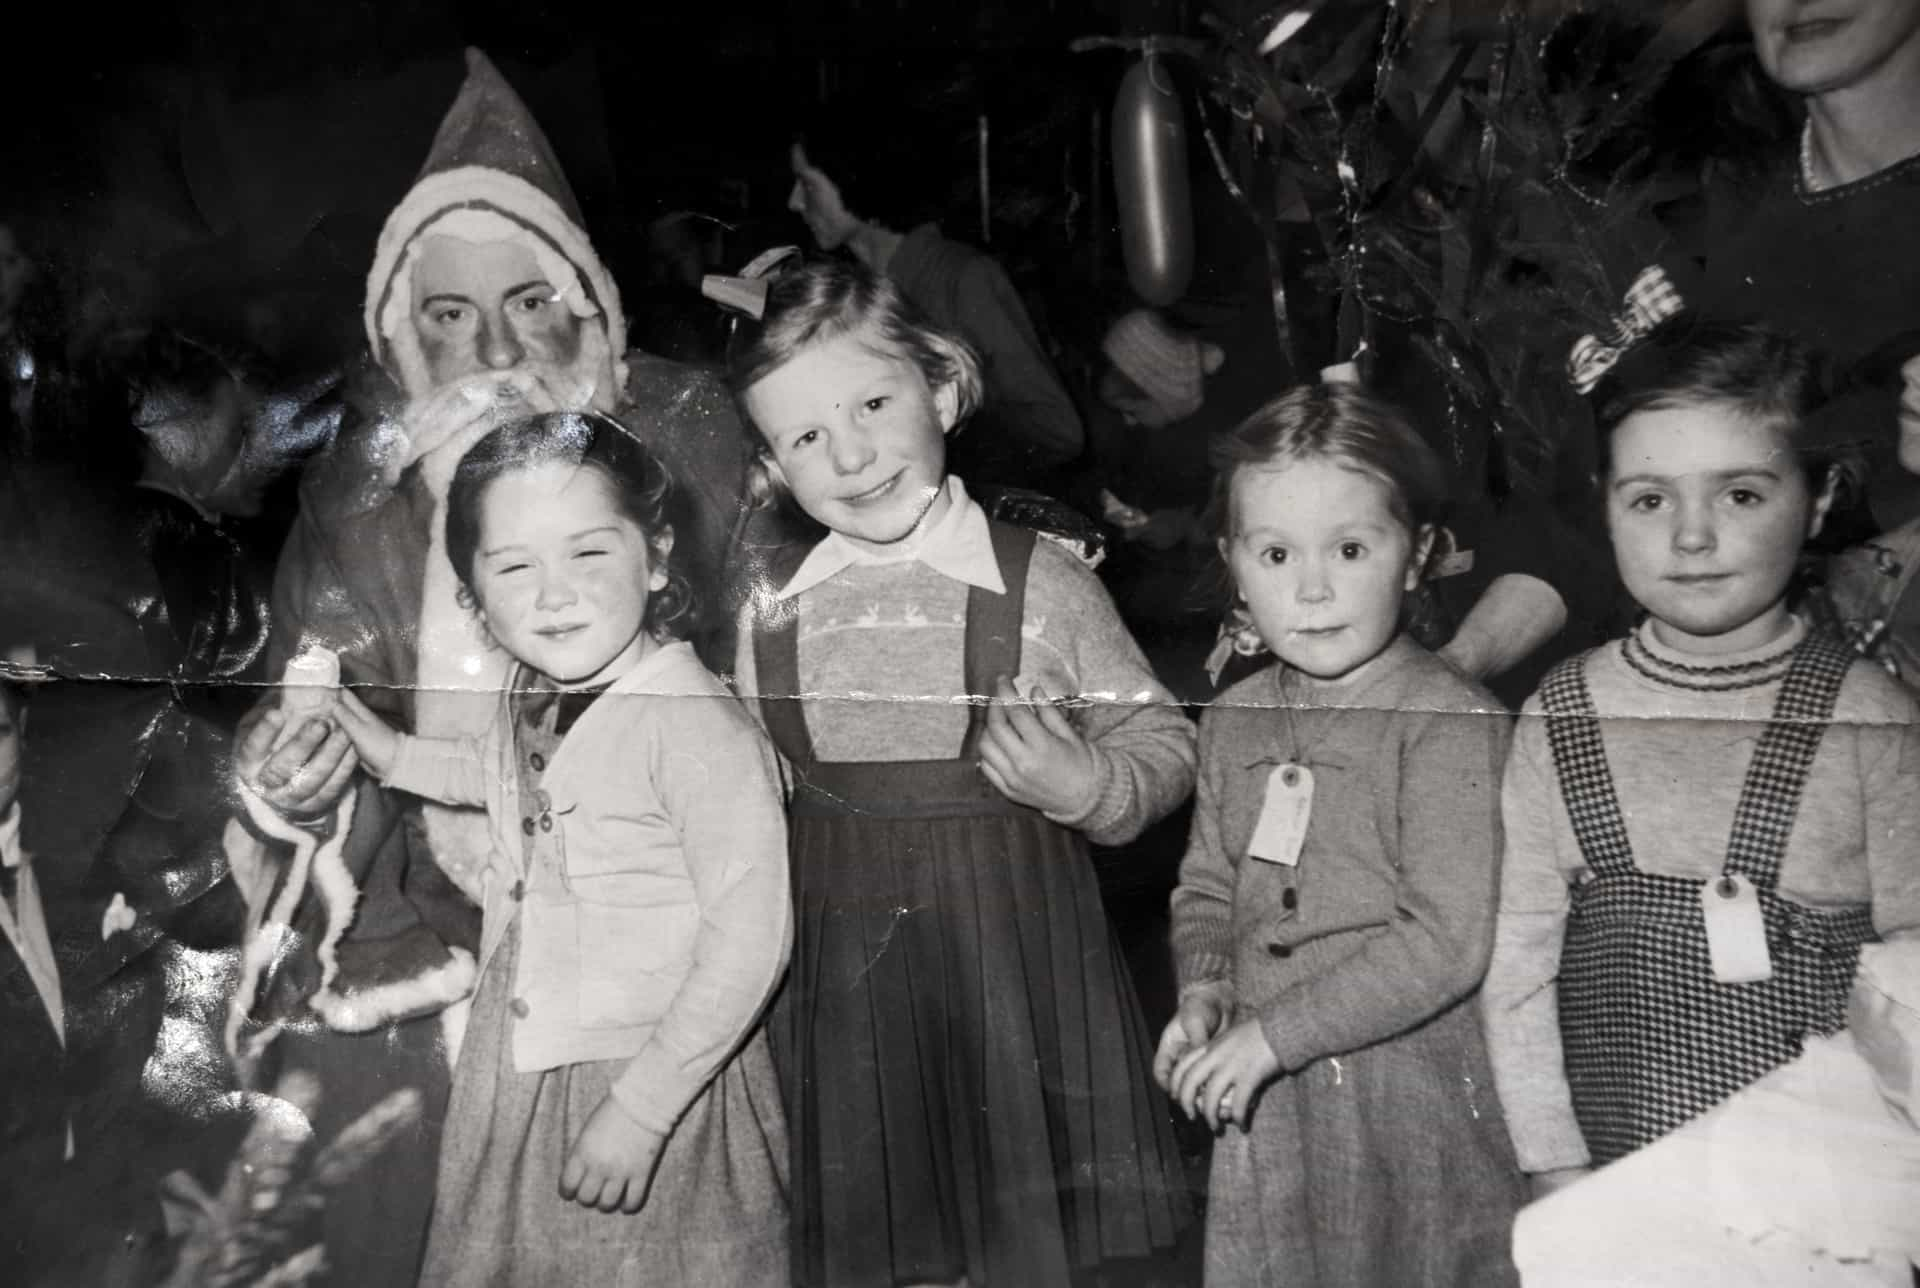 This one here, well you had to wear labels when you went to the works Christmas Party. That's me there on the far right. It was down at T.I. (Tube Investments). I was about 4 or 5, so maybe it's about 1952.